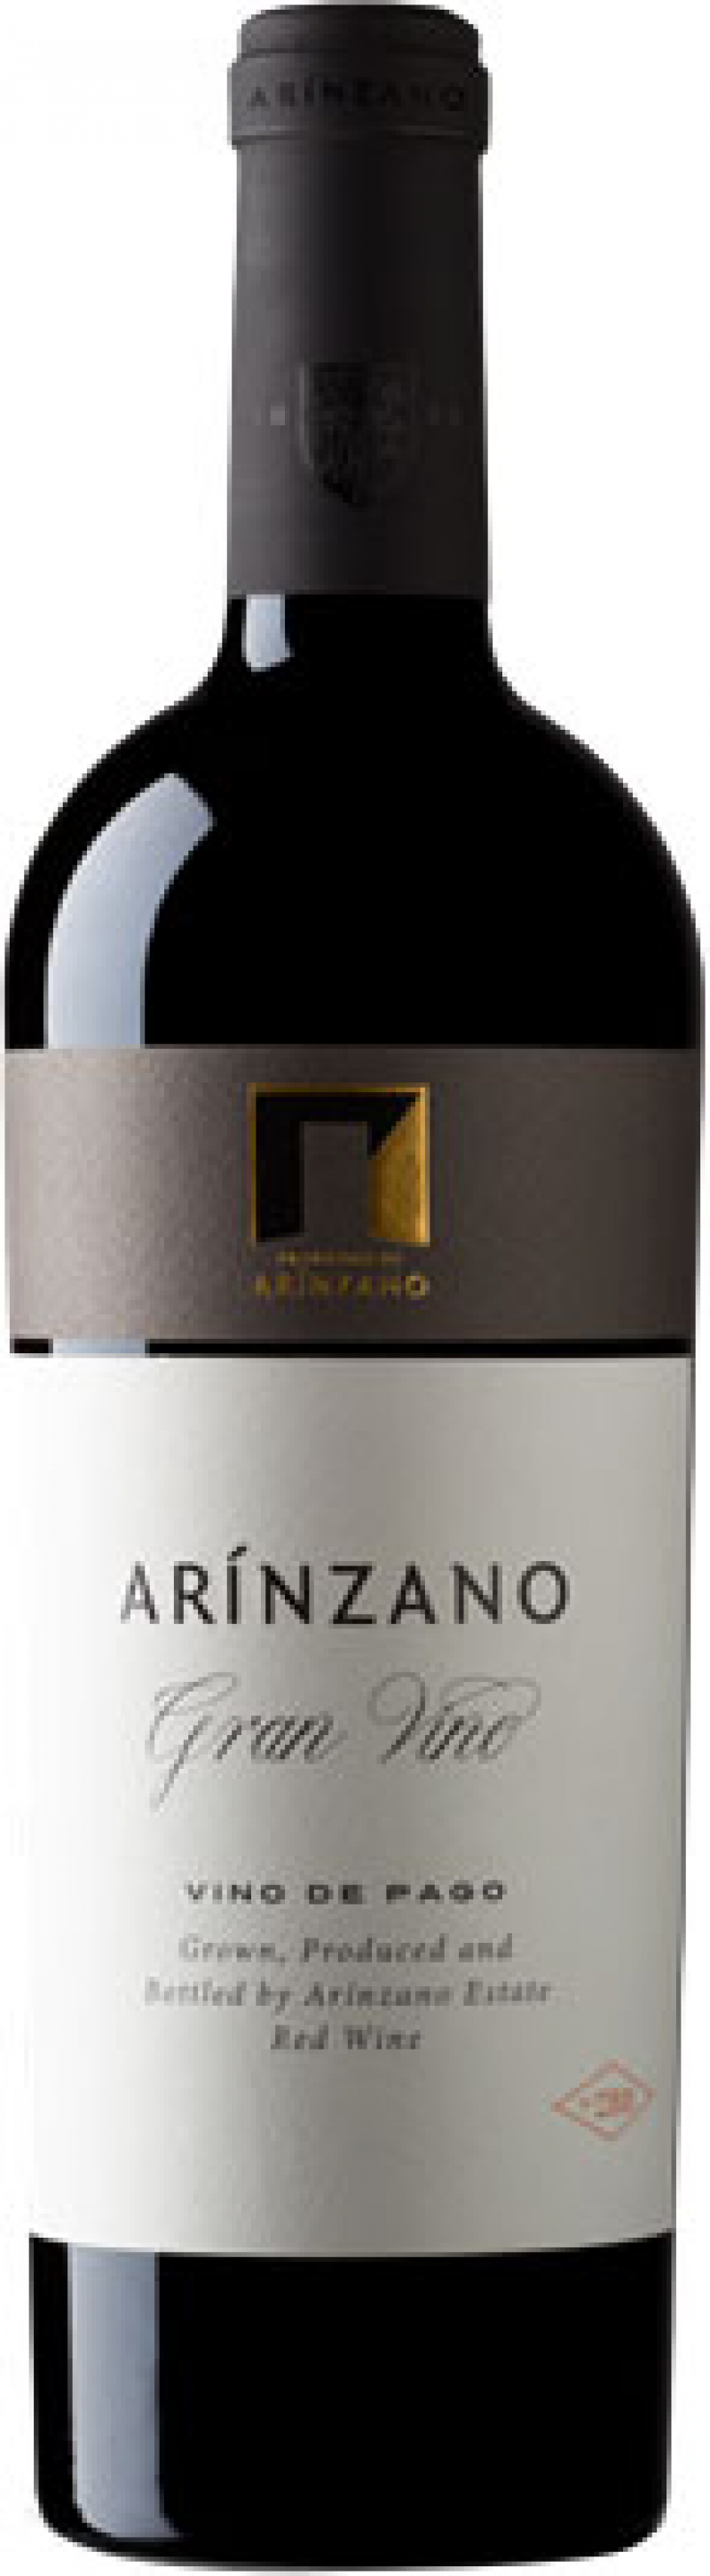 Arinzano - Gran Vino Tinto 2010 (75cl Bottle)